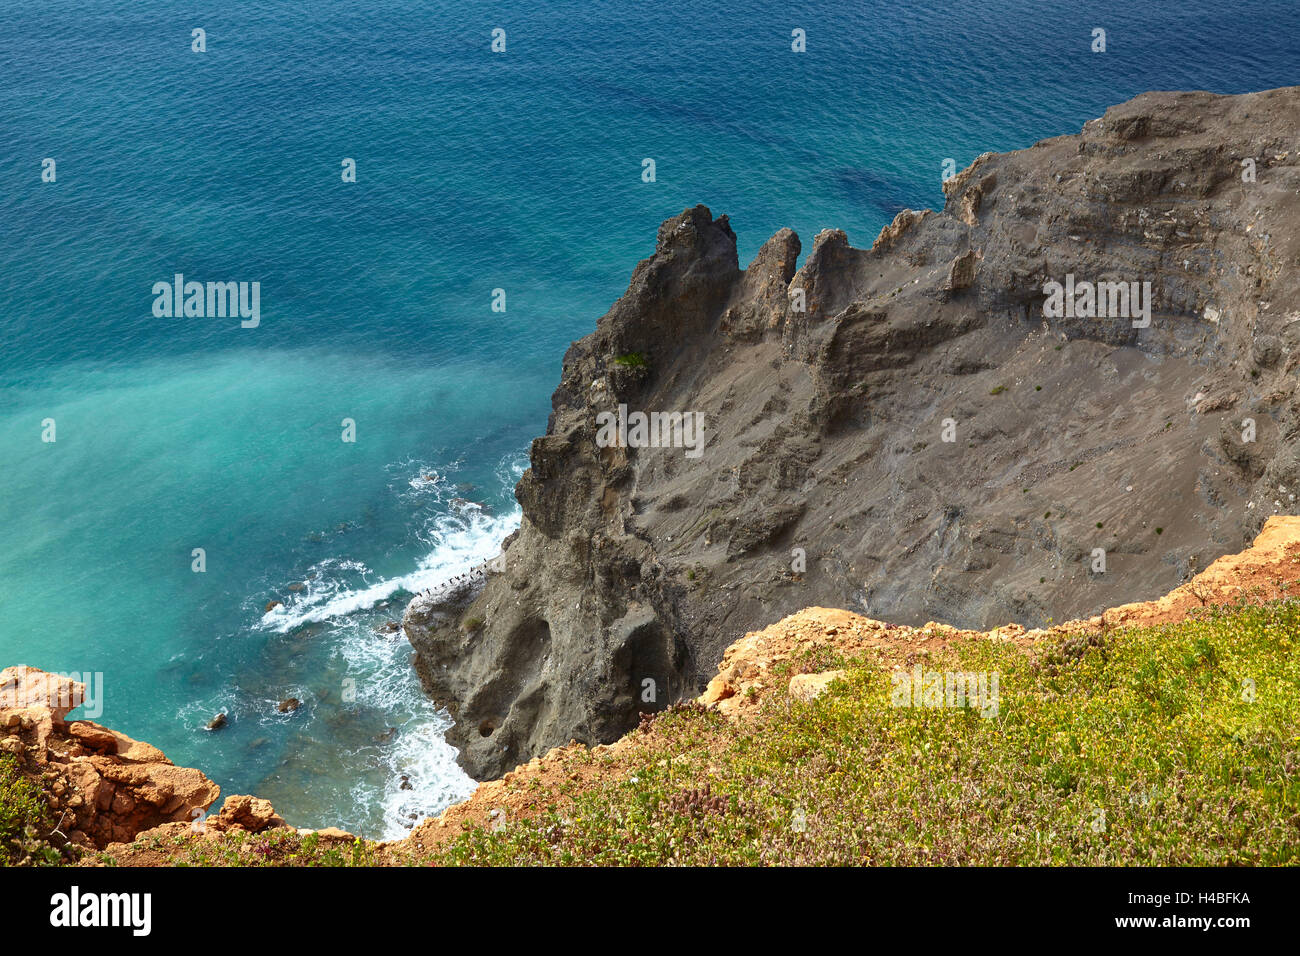 black basalt rock as a geologic anomaly at the rock coast at the Atlantic with Luz, west of Lagos, Algarve, Portugal, - Stock Image